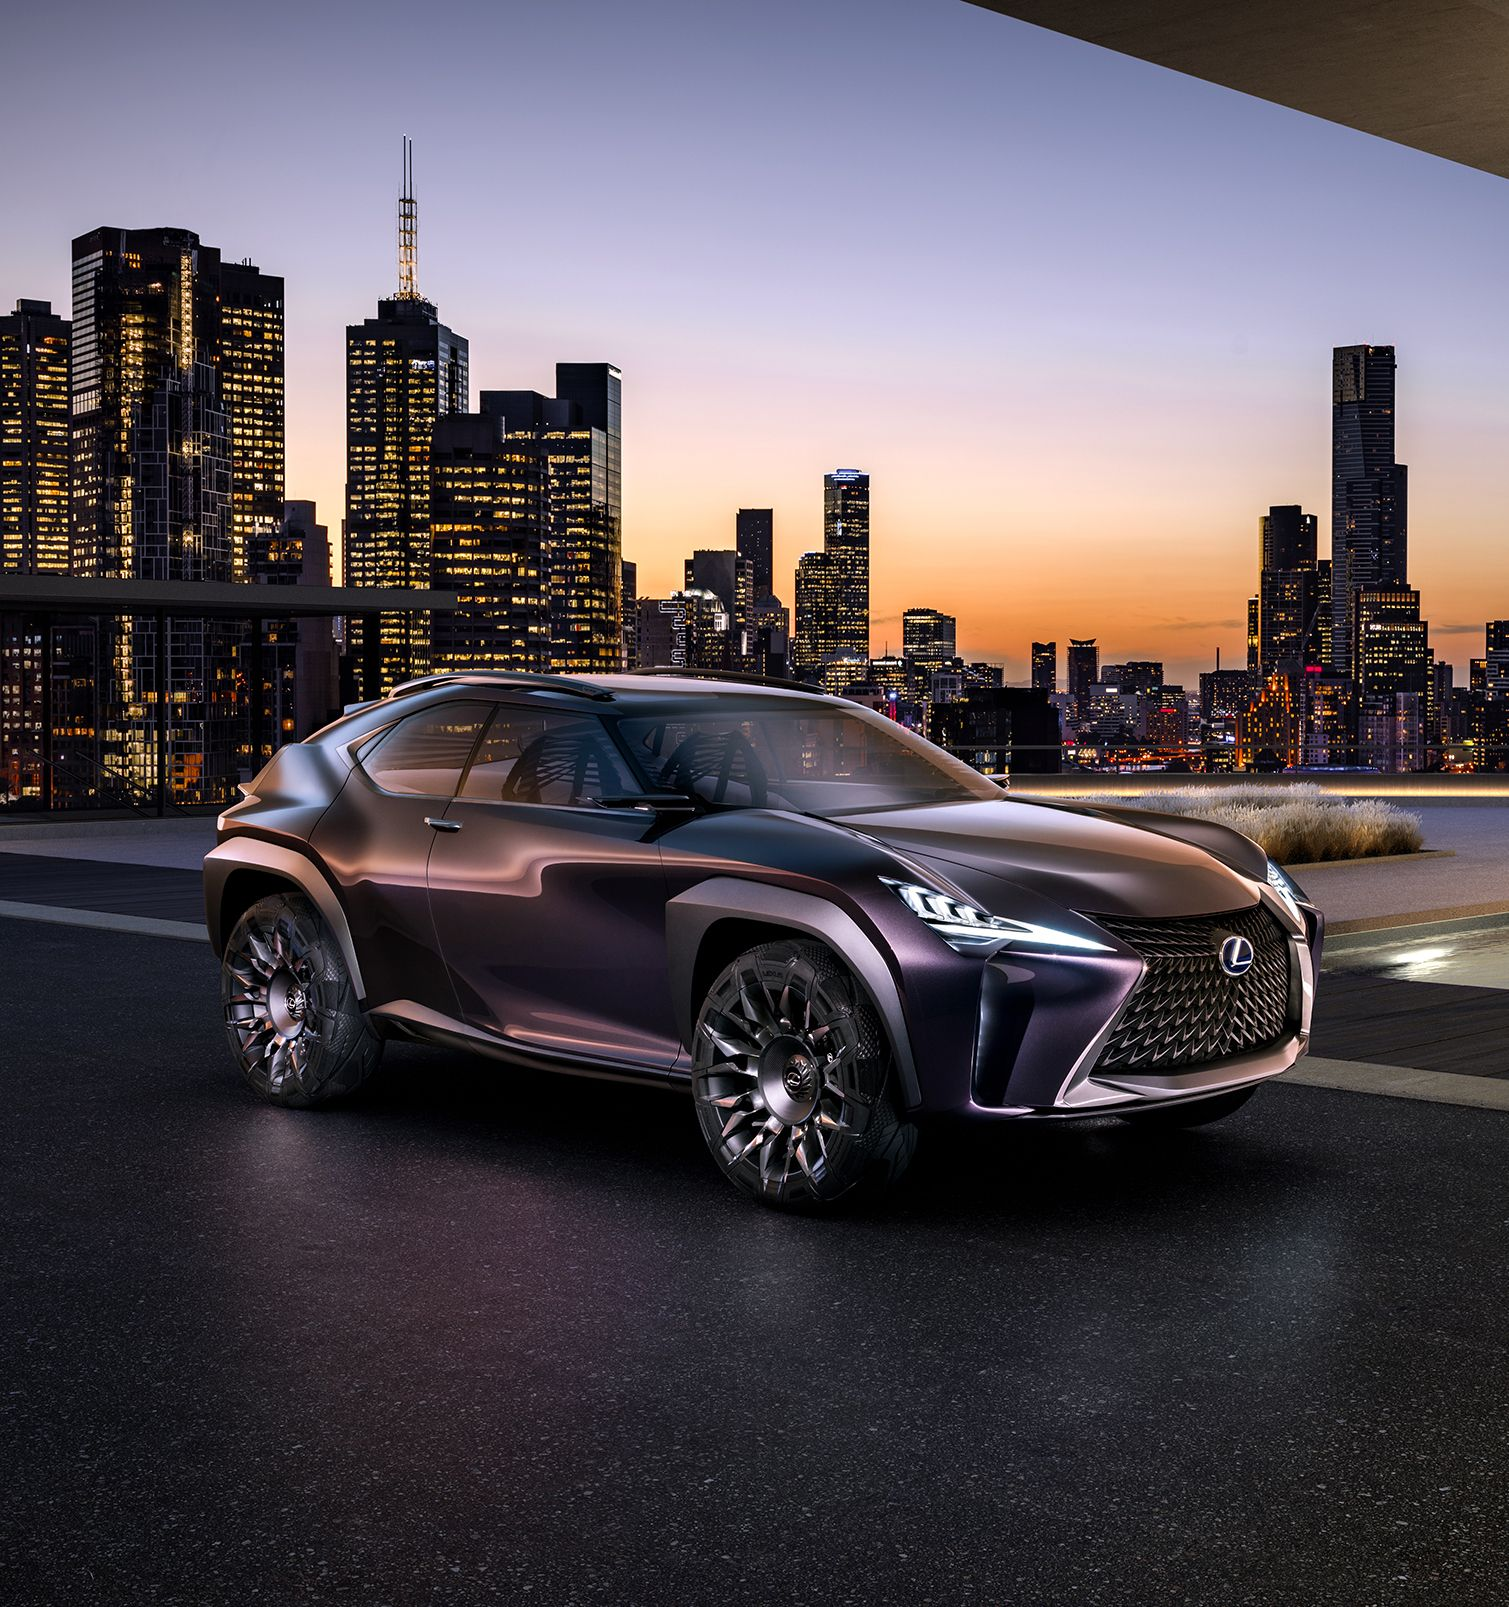 Radical Crossover Packaging The Ux Concept Is A New Variety Of Four Seater Crossover Which Contrasts The Almost B Lexus Crossover Lexus Suv Toyota Concept Car